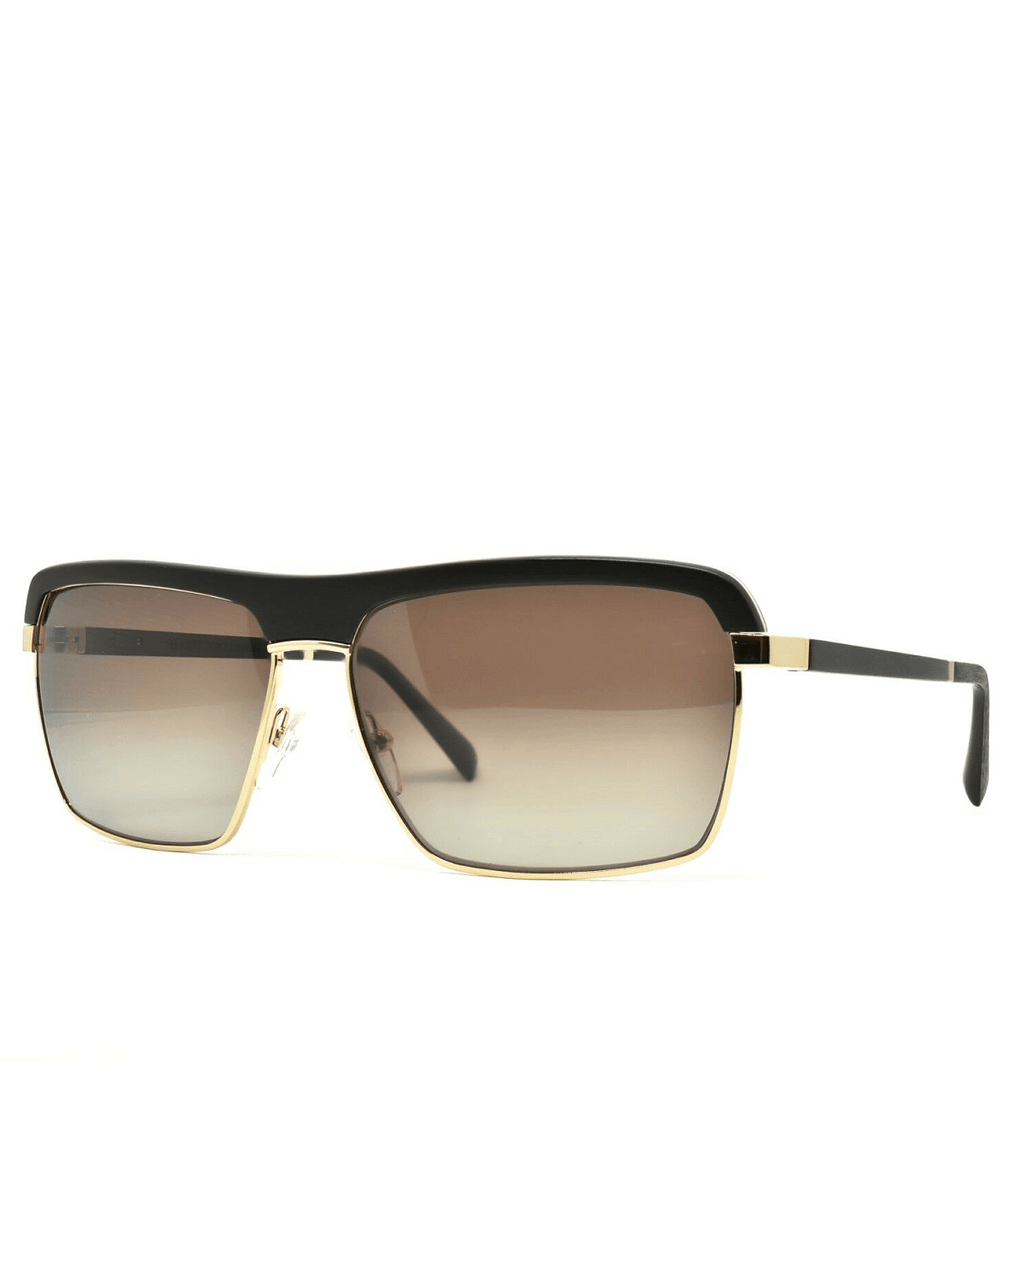 Gold and Wood Palermo Wood/Metal Unisex Luxury Sunglasses